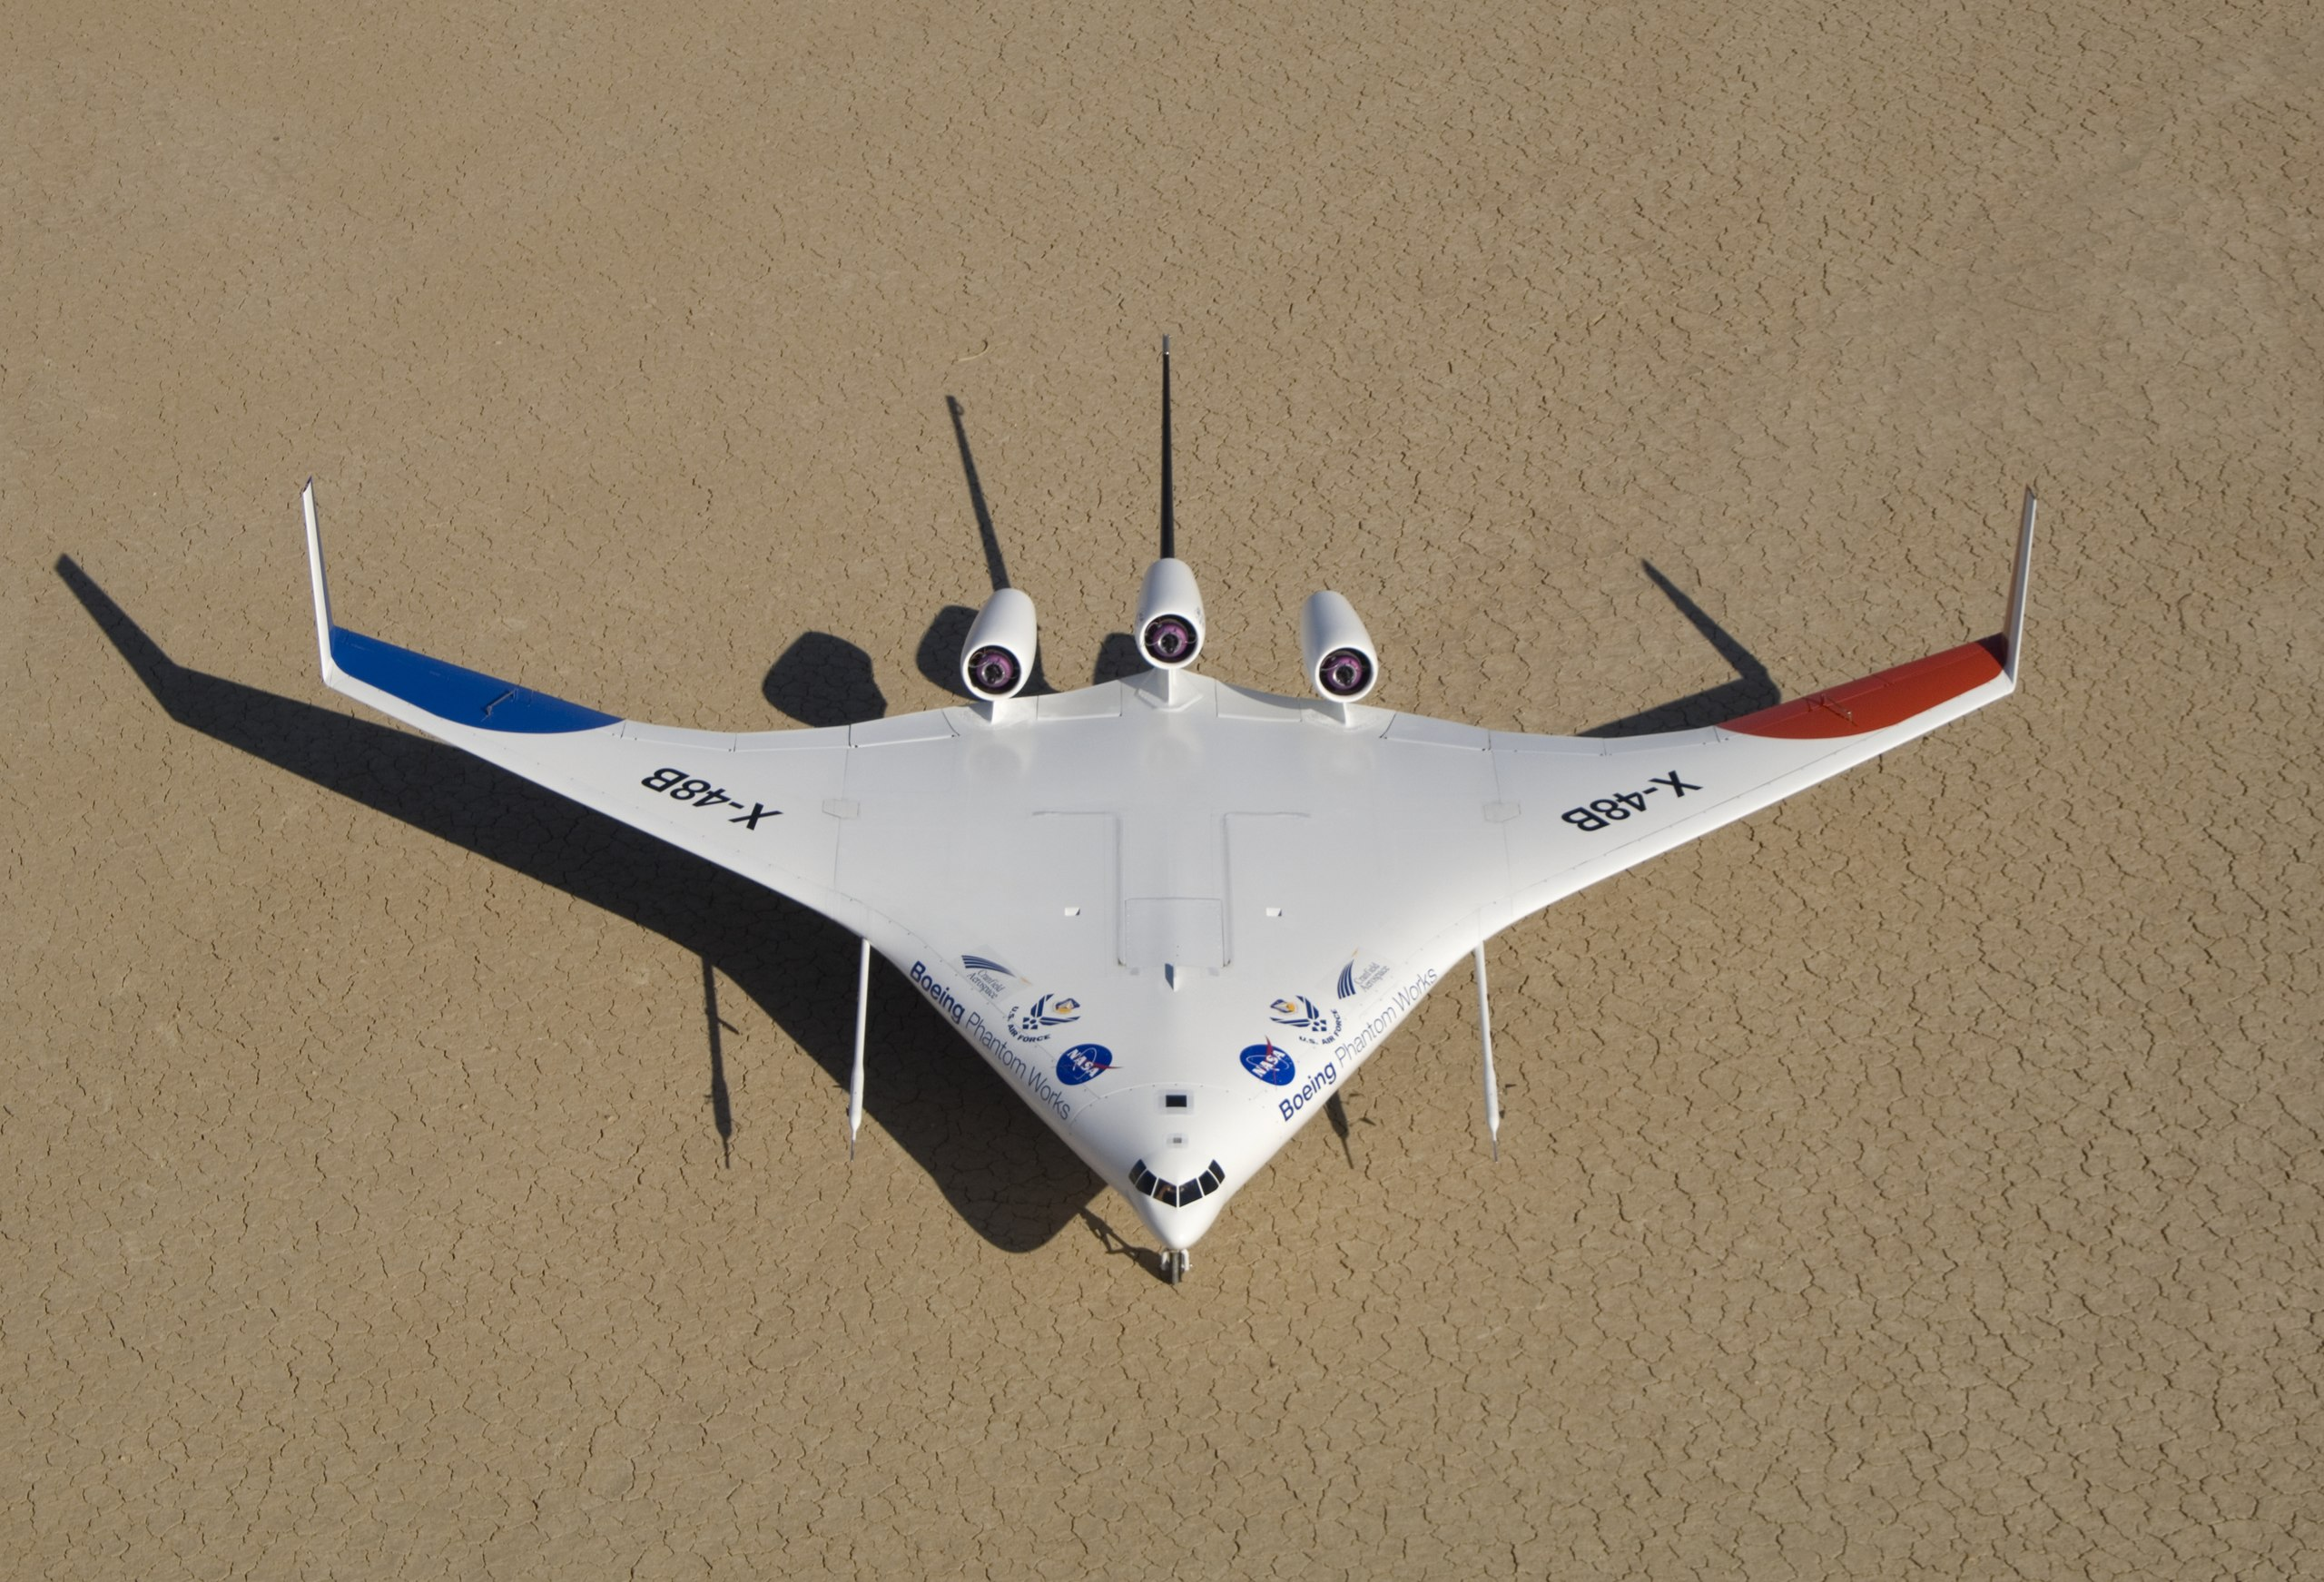 Boeing's colorful X-48B Blended Wing Body technology demonstrator shows off its unique triangular lines while parked on Rogers Dry Lake adjacent to NASA Dryden.